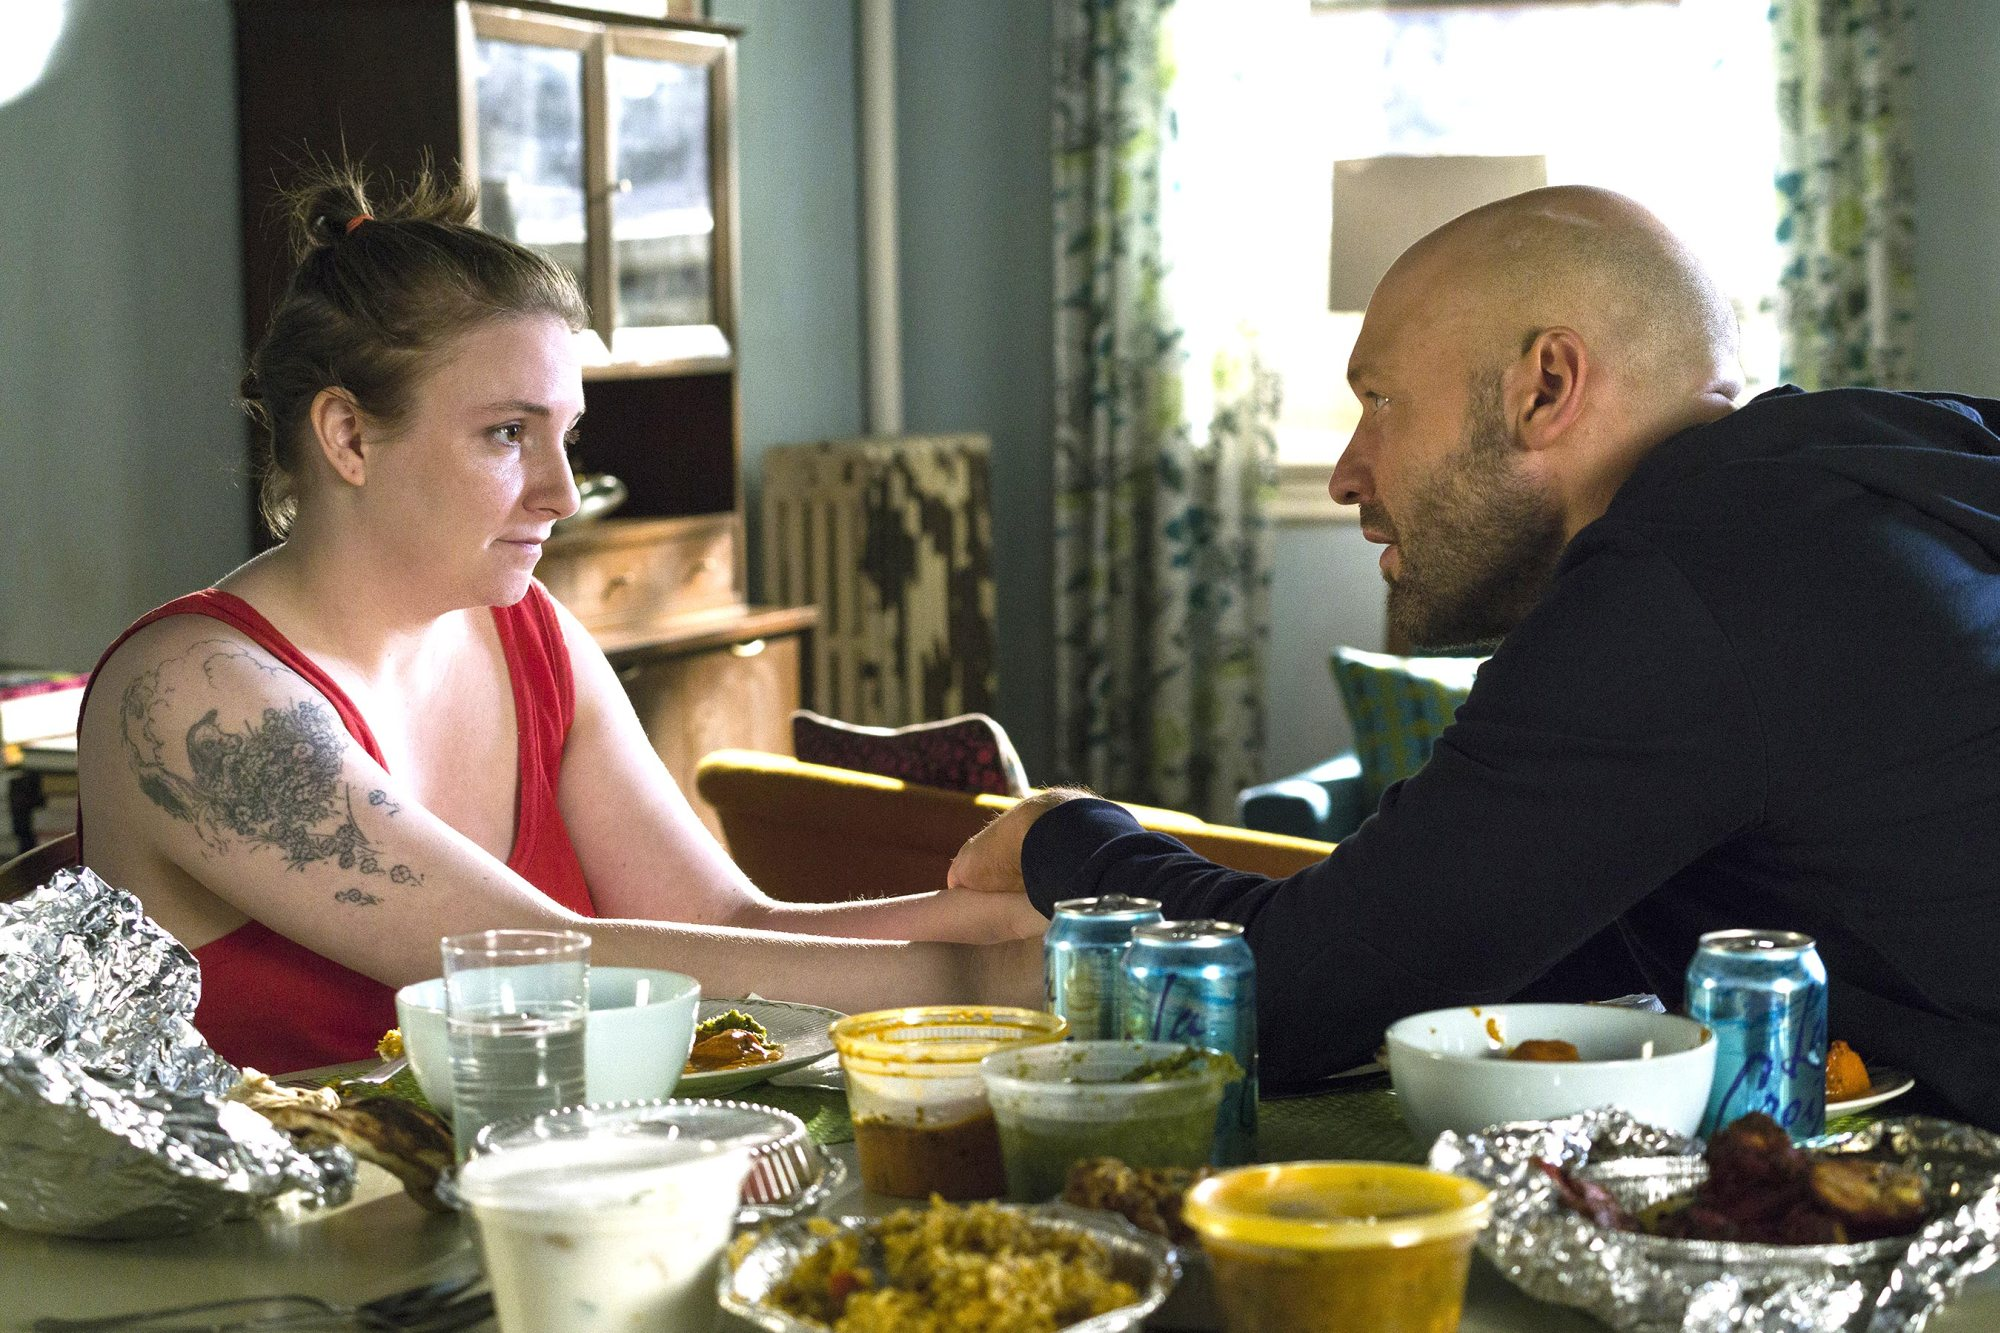 GIRLS, Season 6, Episode 7: Debut 3/26/17 Episode 58 (season 6, episode 7), debut 3/26/17: Lena Dunham, Corey Stoll. photo: Mark Schafer